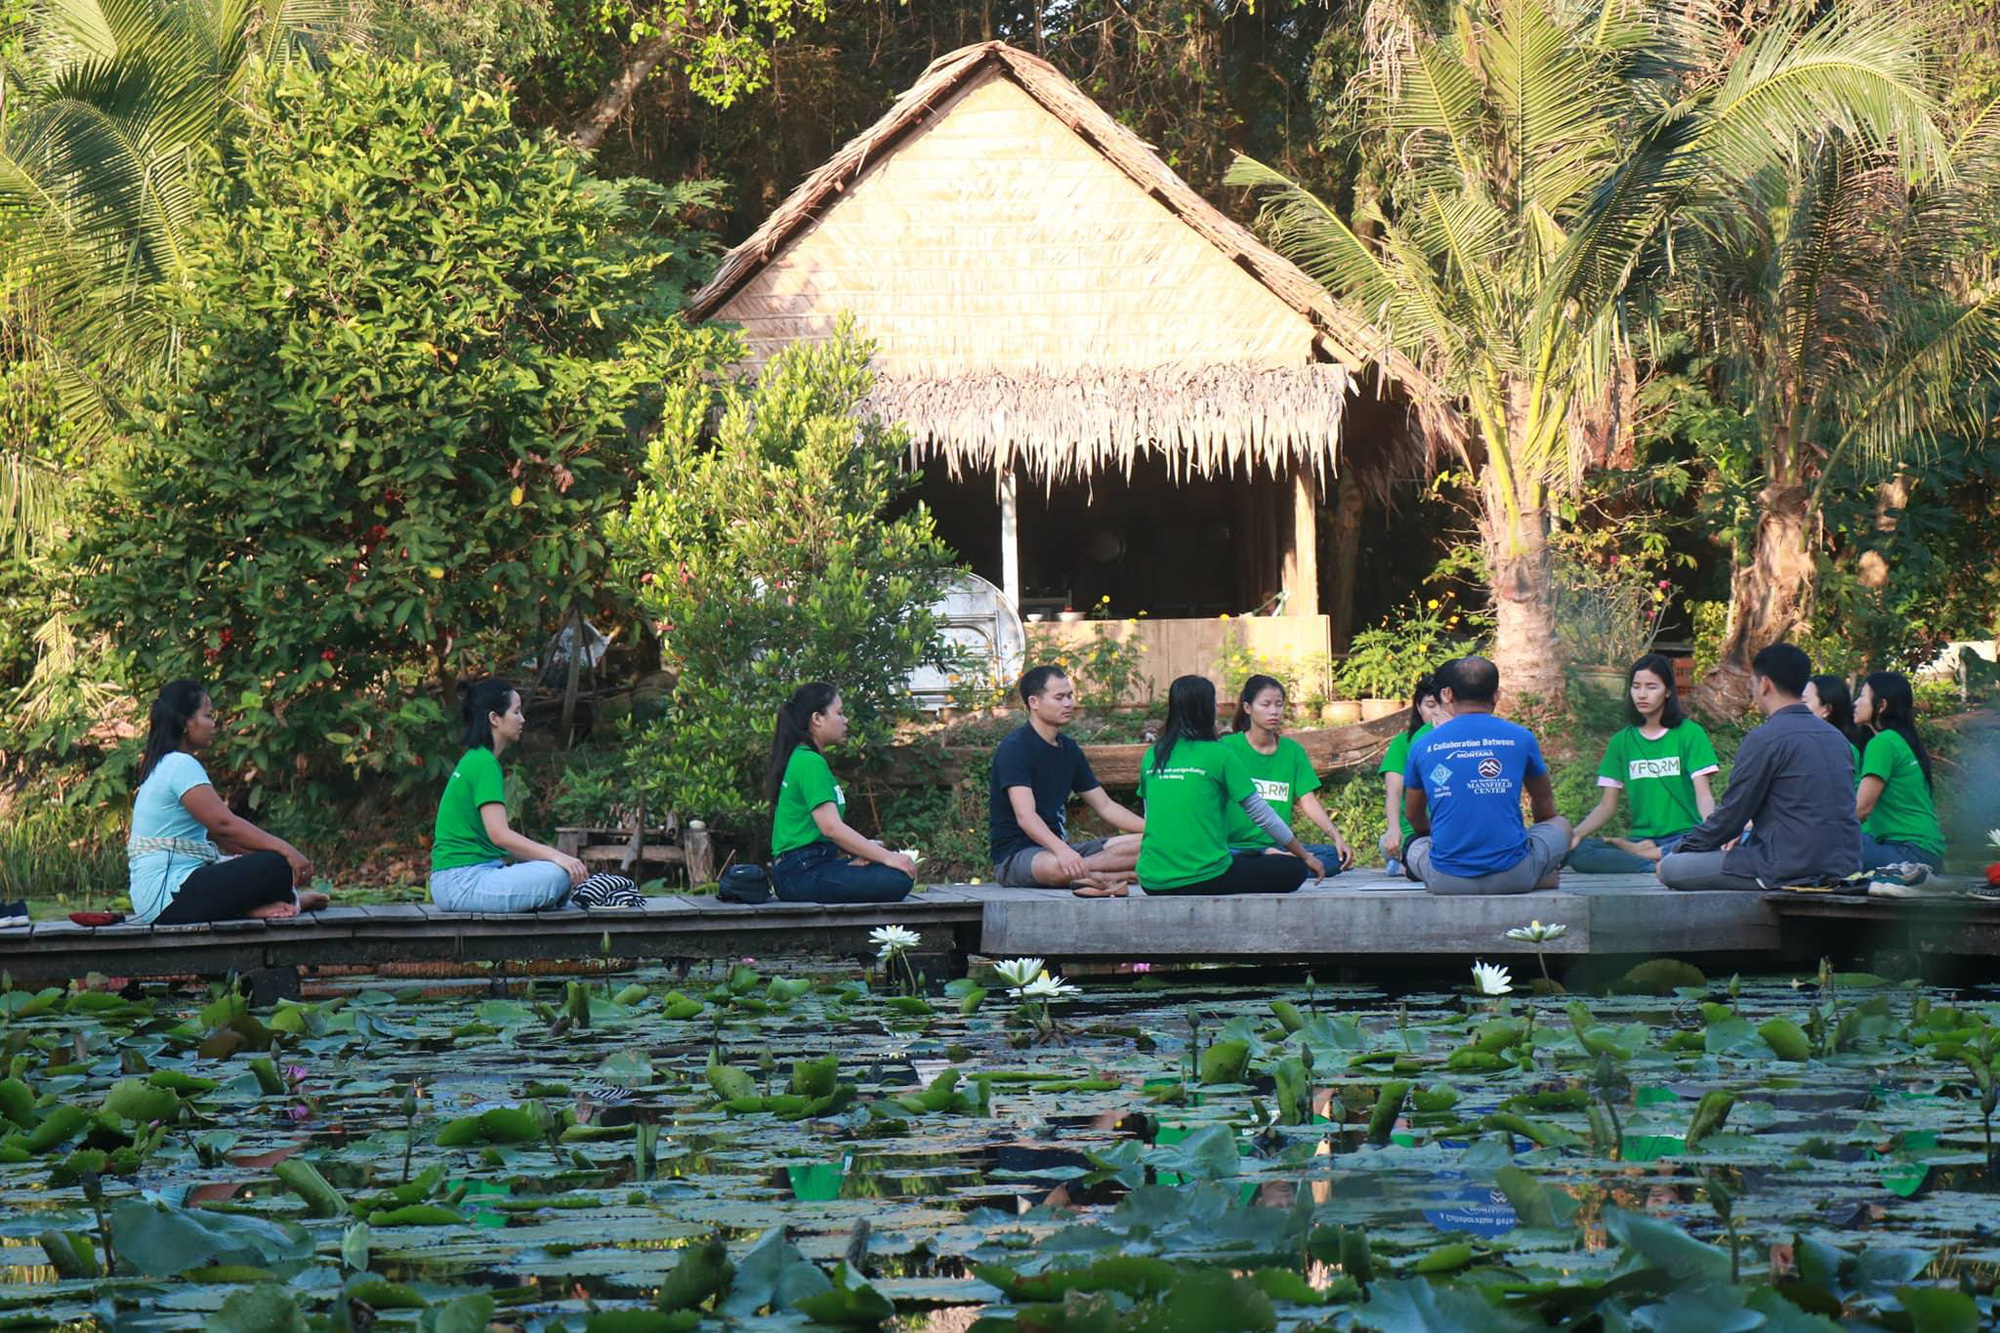 Dong Thap deserves title of Vietnam's magical 'land of the lotus'